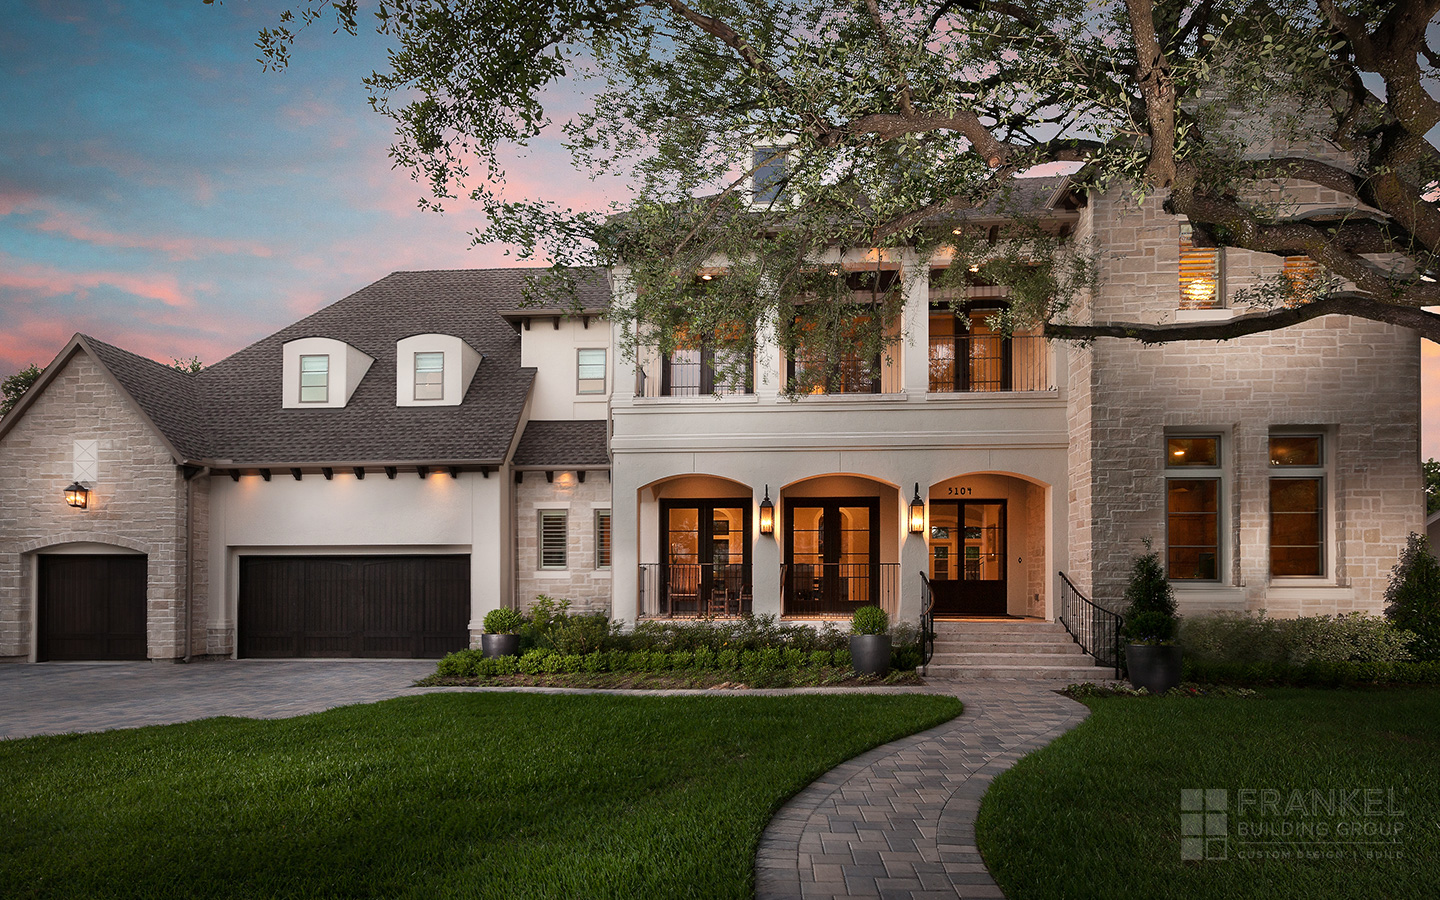 Bellaire Transitional | Frankel Building Group